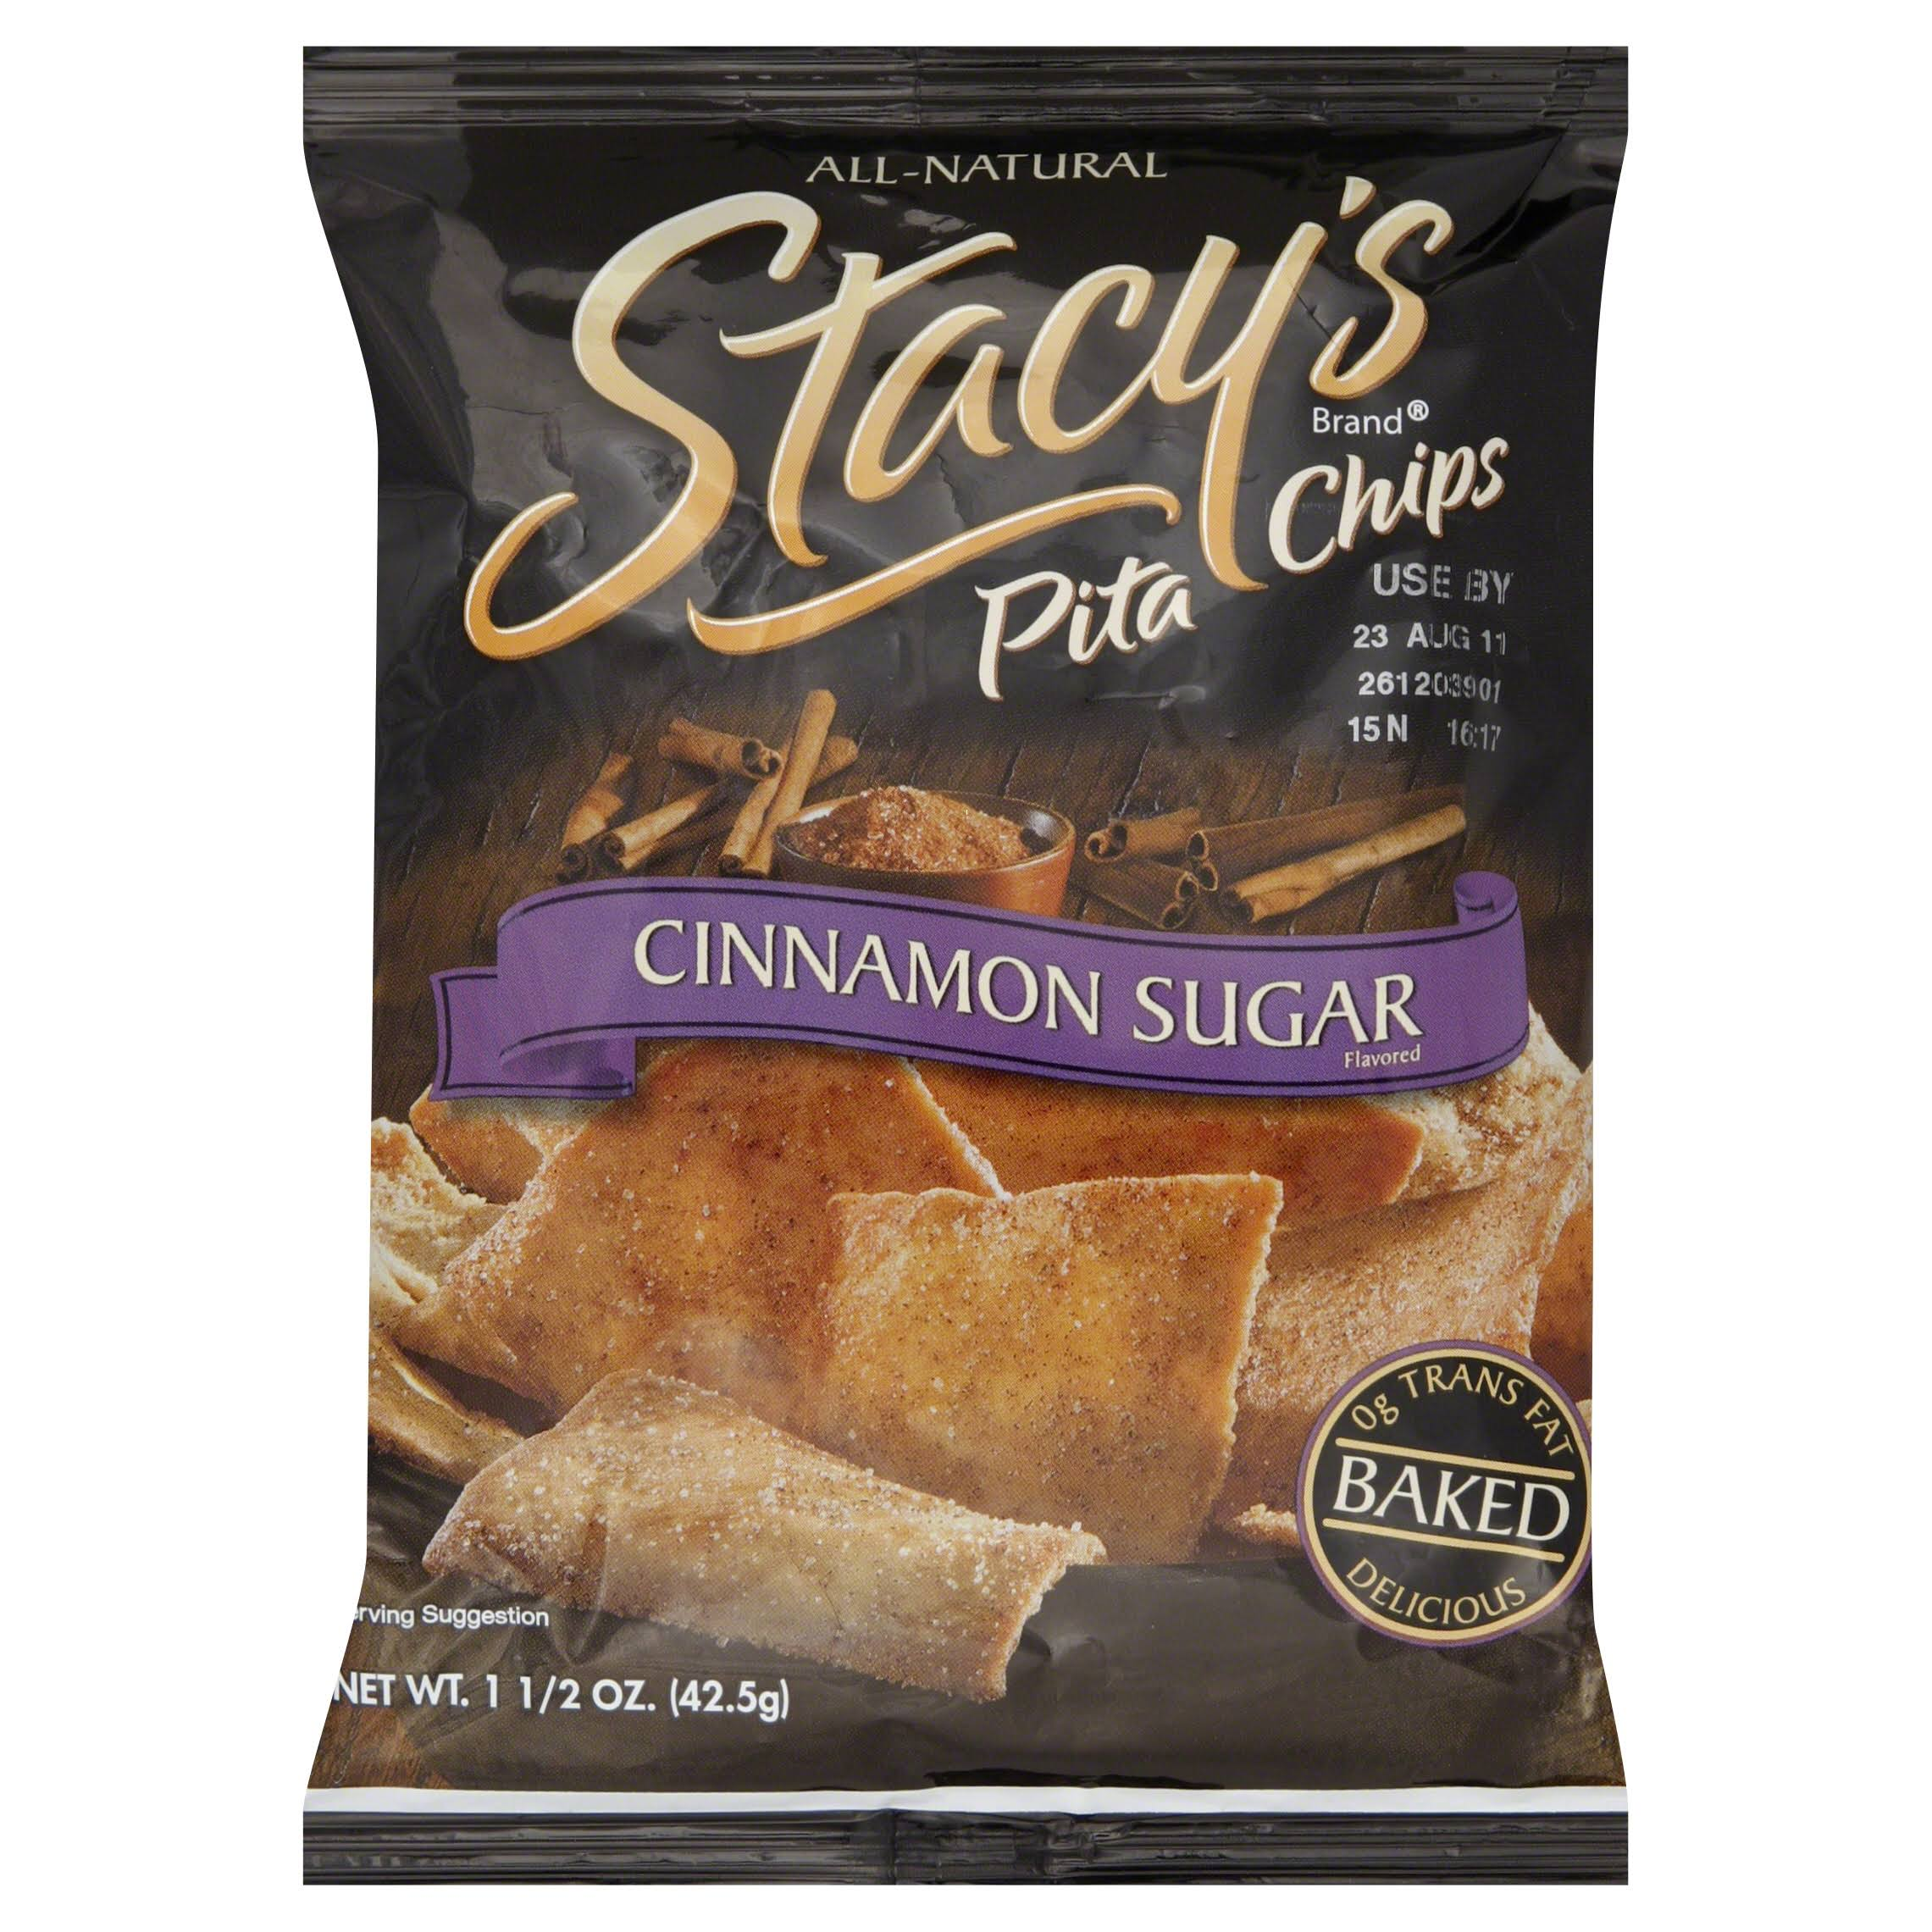 Stacy's Pita Chips - Cinnamon Sugar, 42.5g